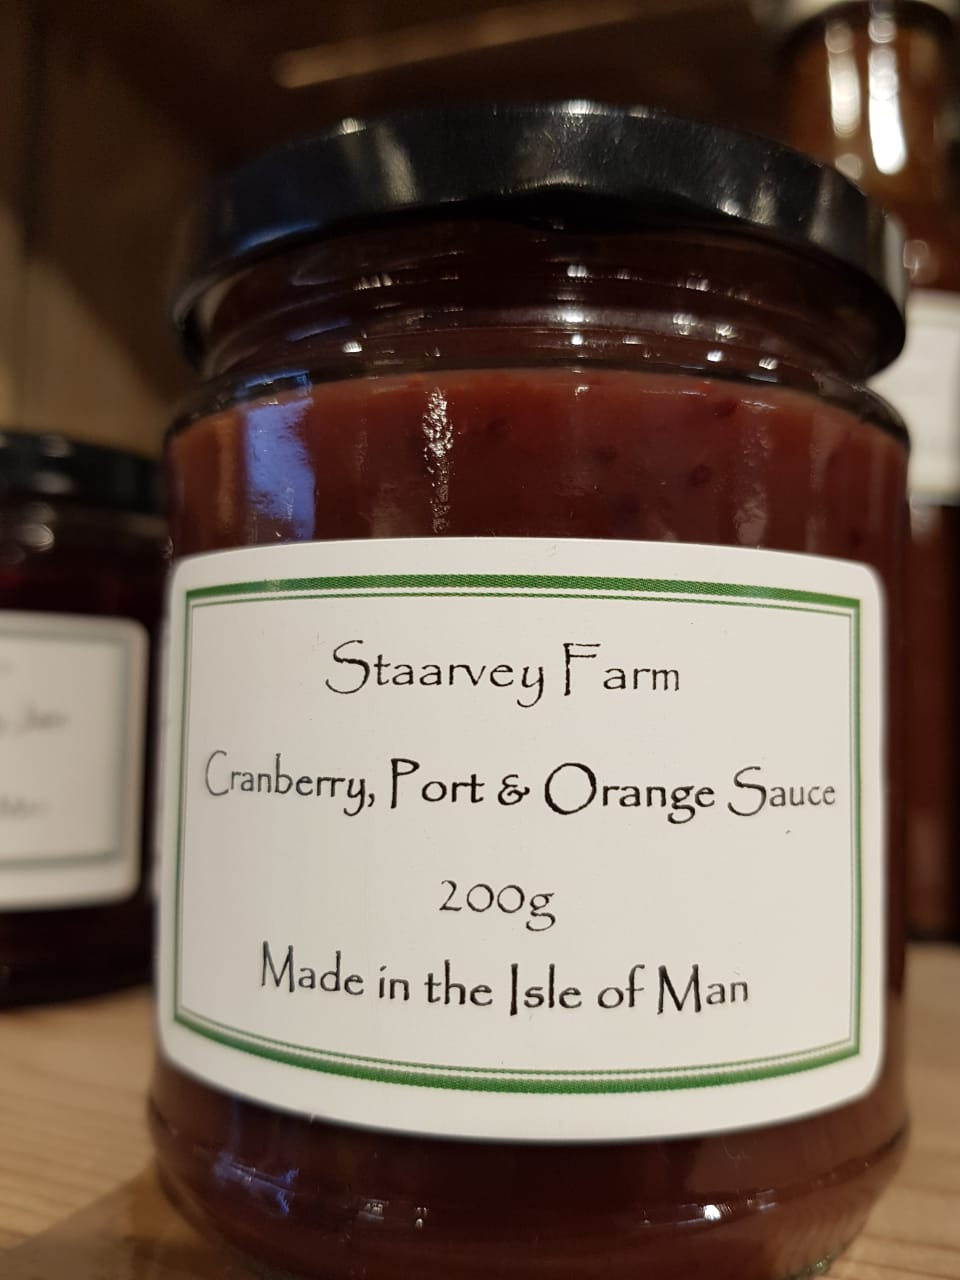 Staarvey Farm Cranberry, Port and Orange Sauce